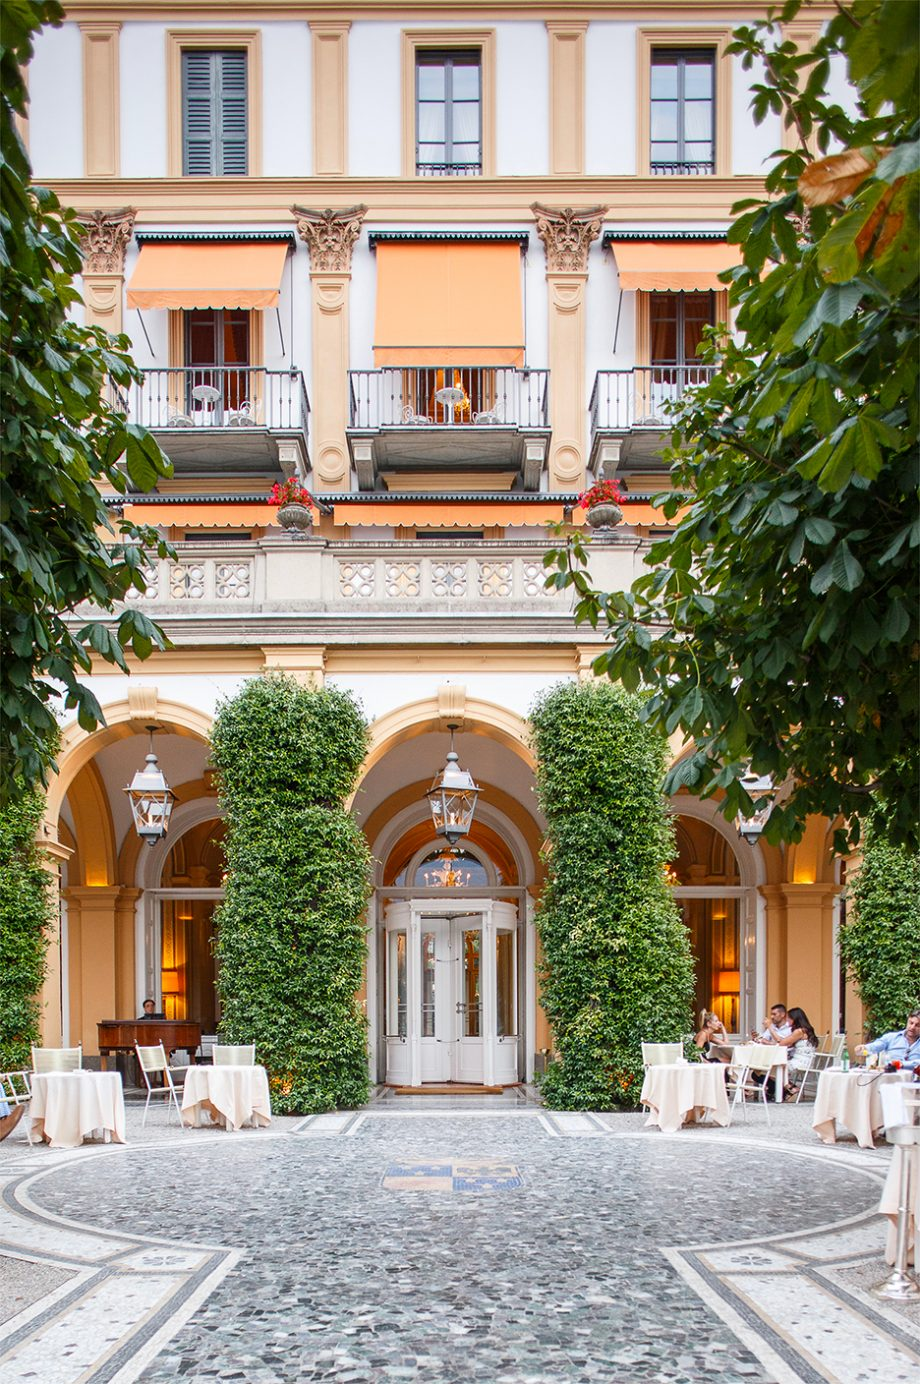 Villa Deste Best Hotel 5 Stars Lake Como